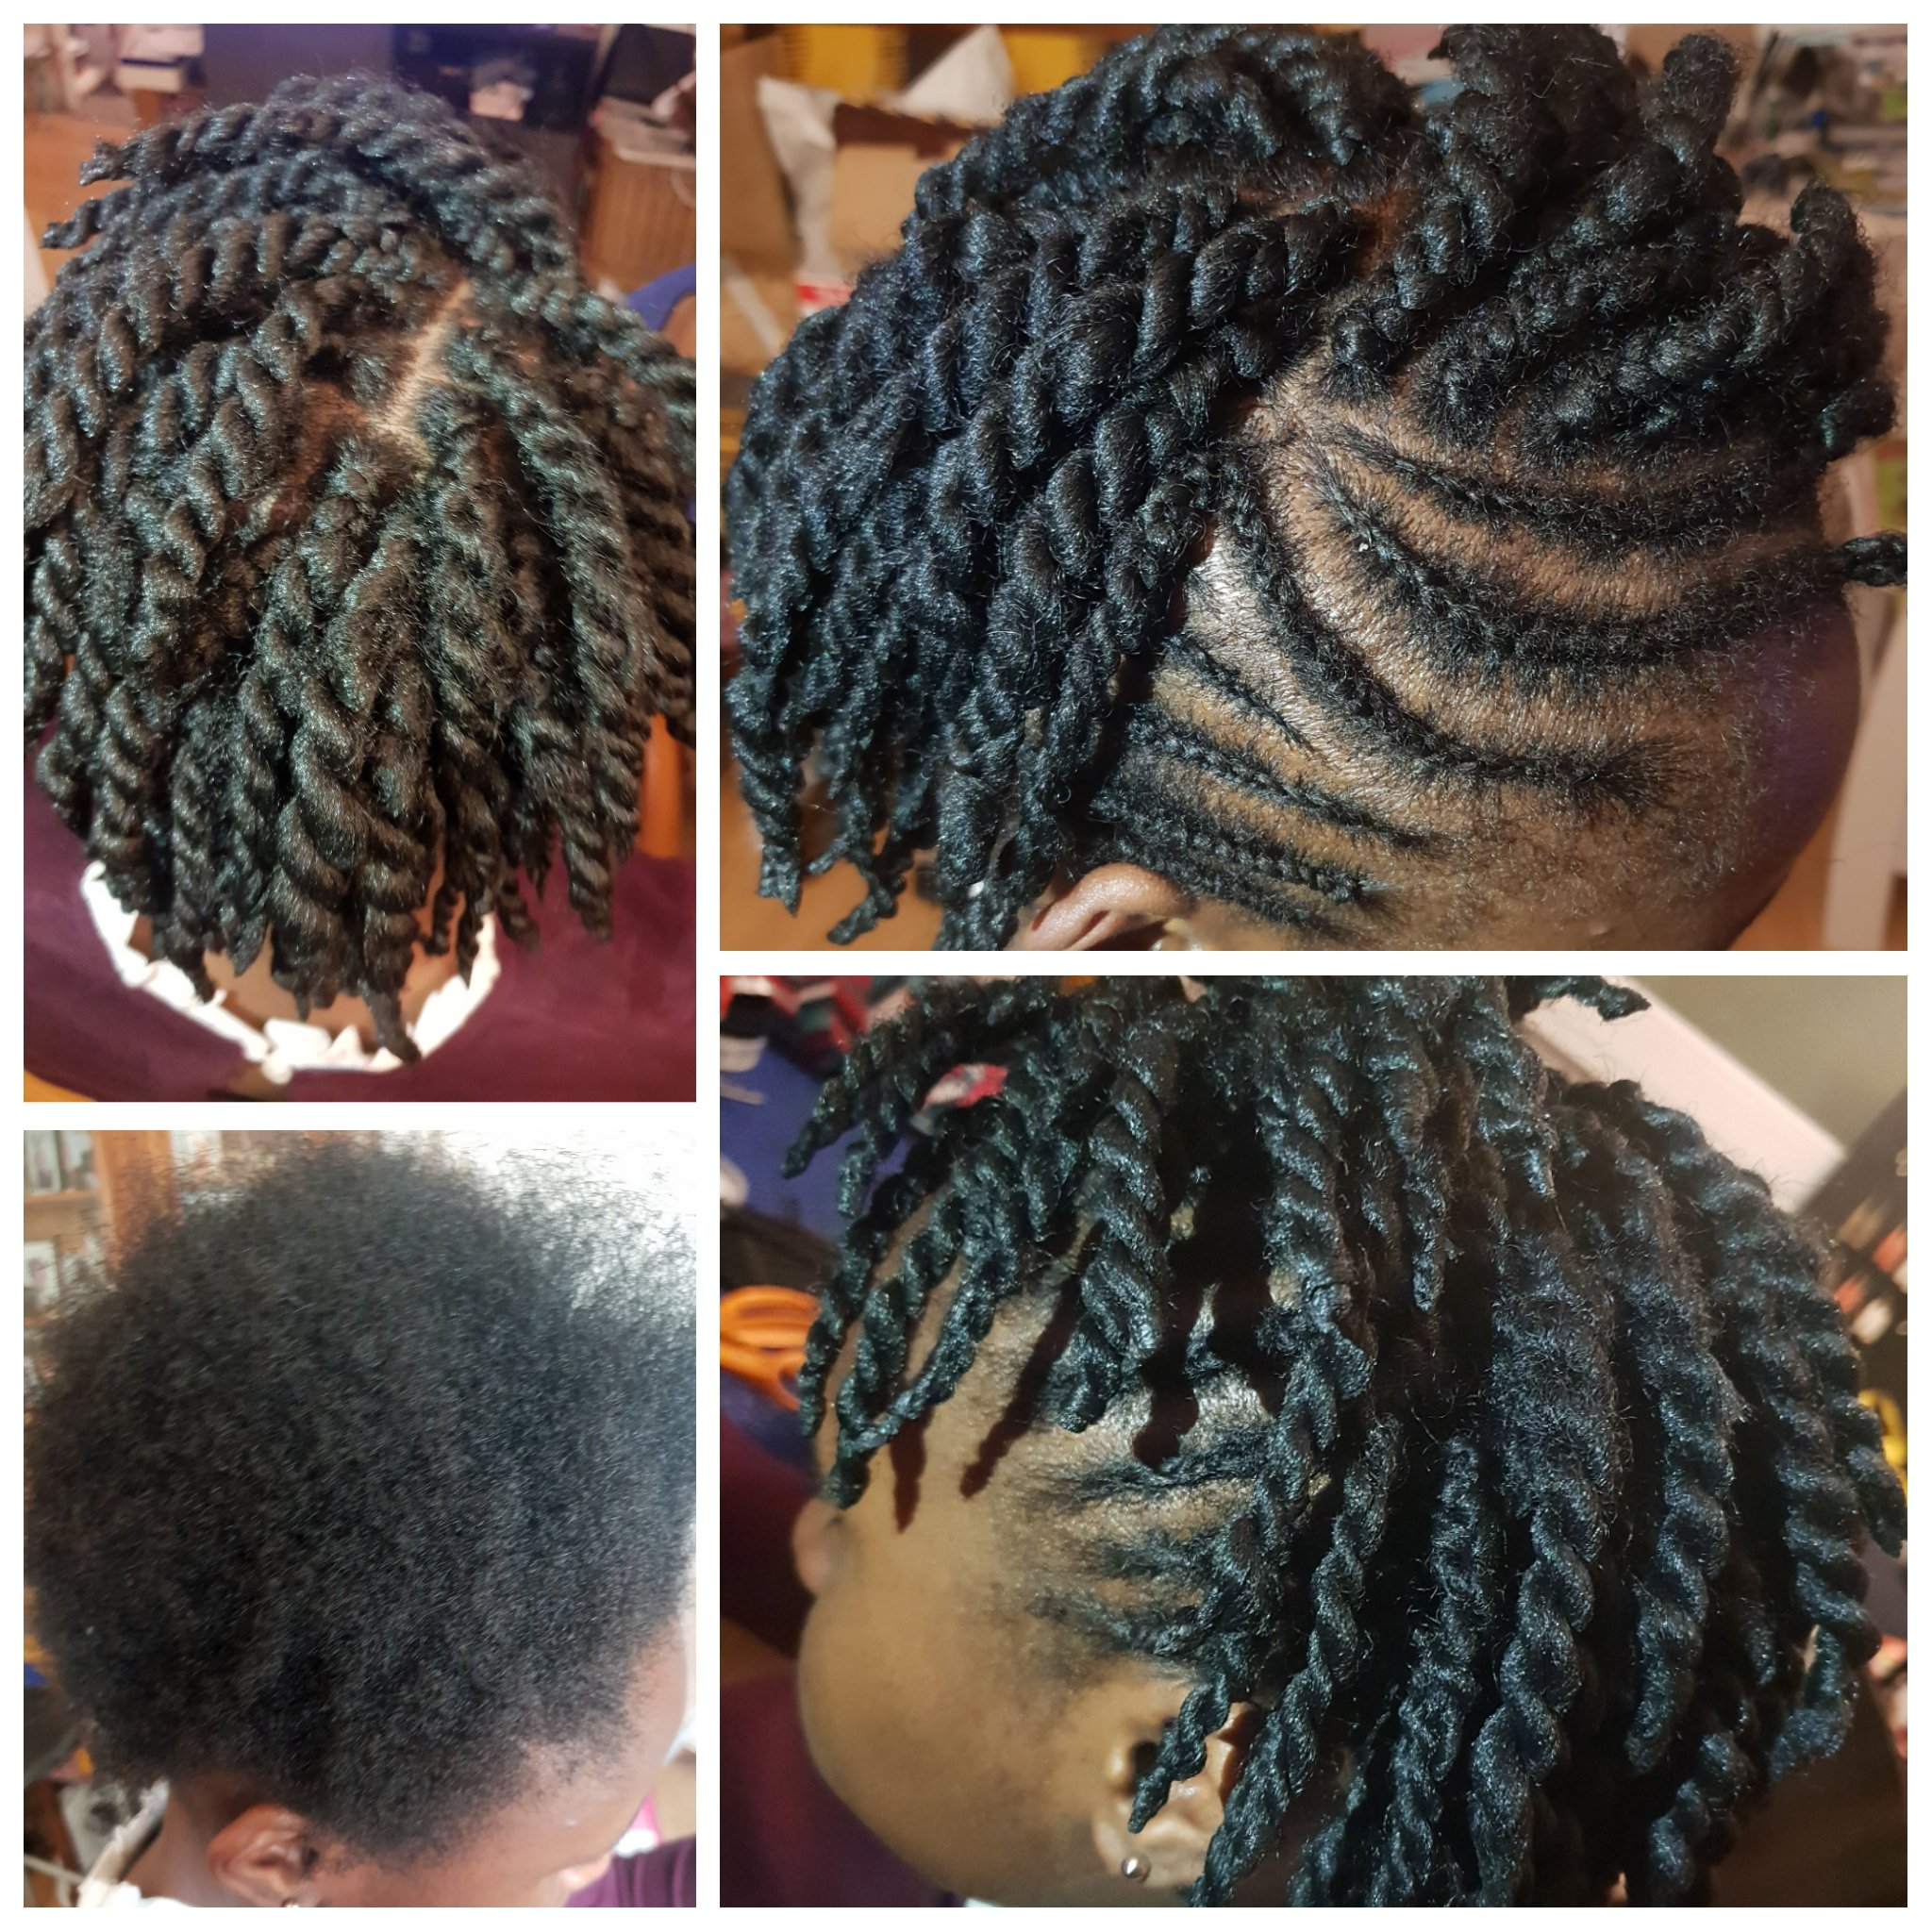 salon de coiffure afro tresse tresses box braids crochet braids vanilles tissages paris 75 77 78 91 92 93 94 95 VXBQAYCV